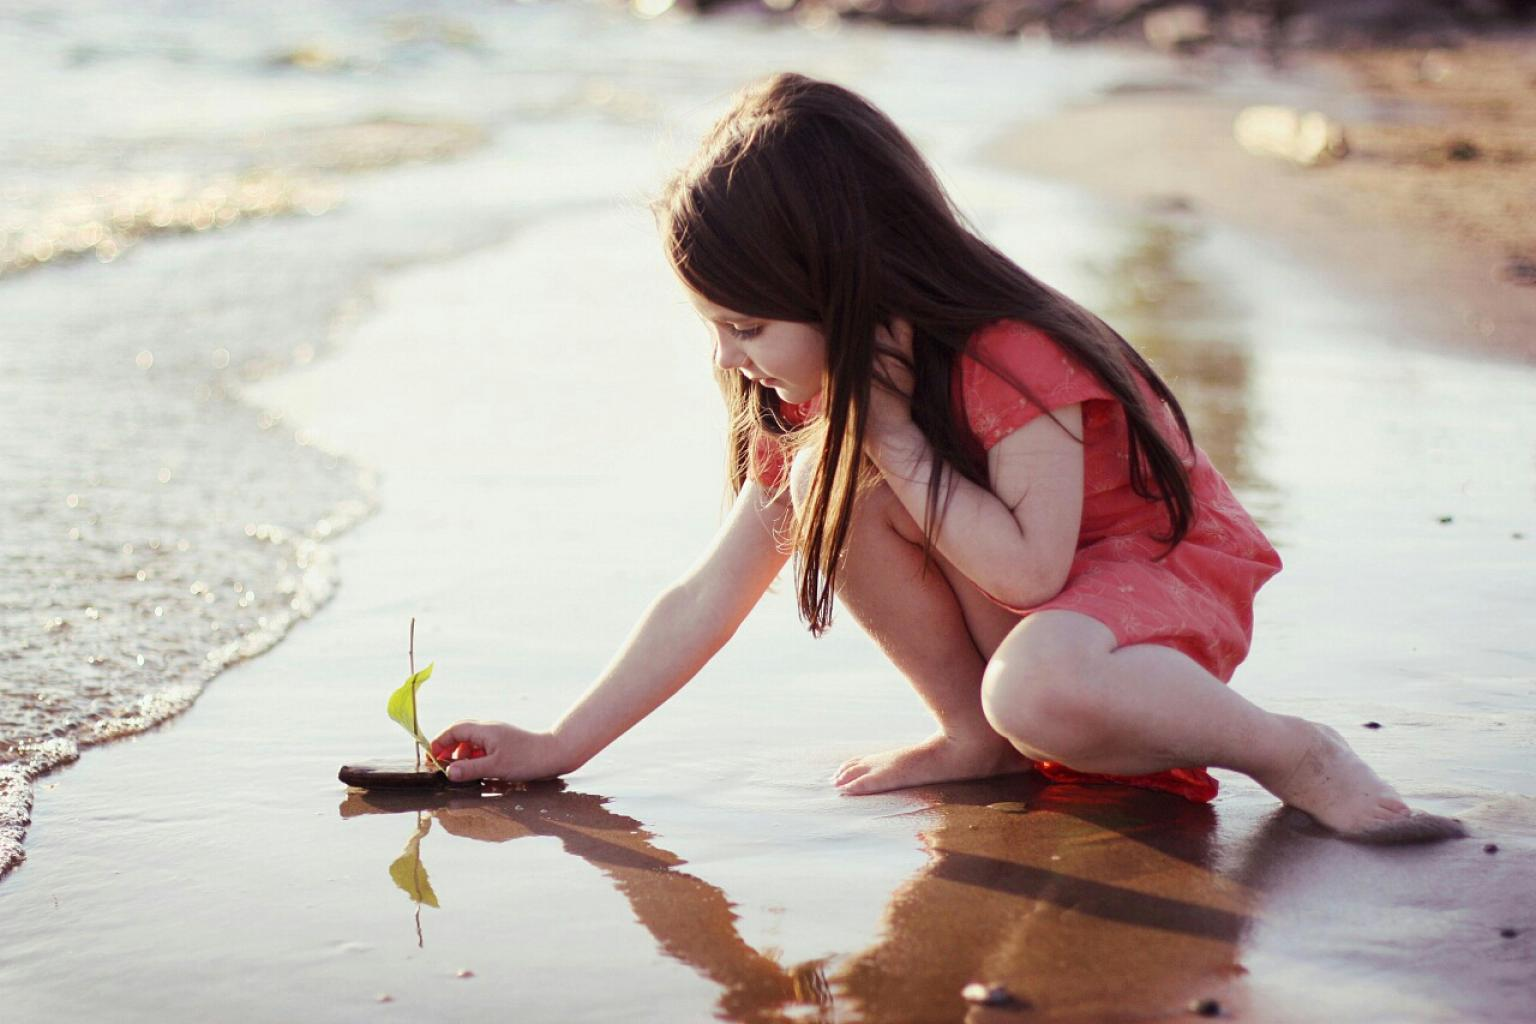 Girl playing on the beach with her little boat